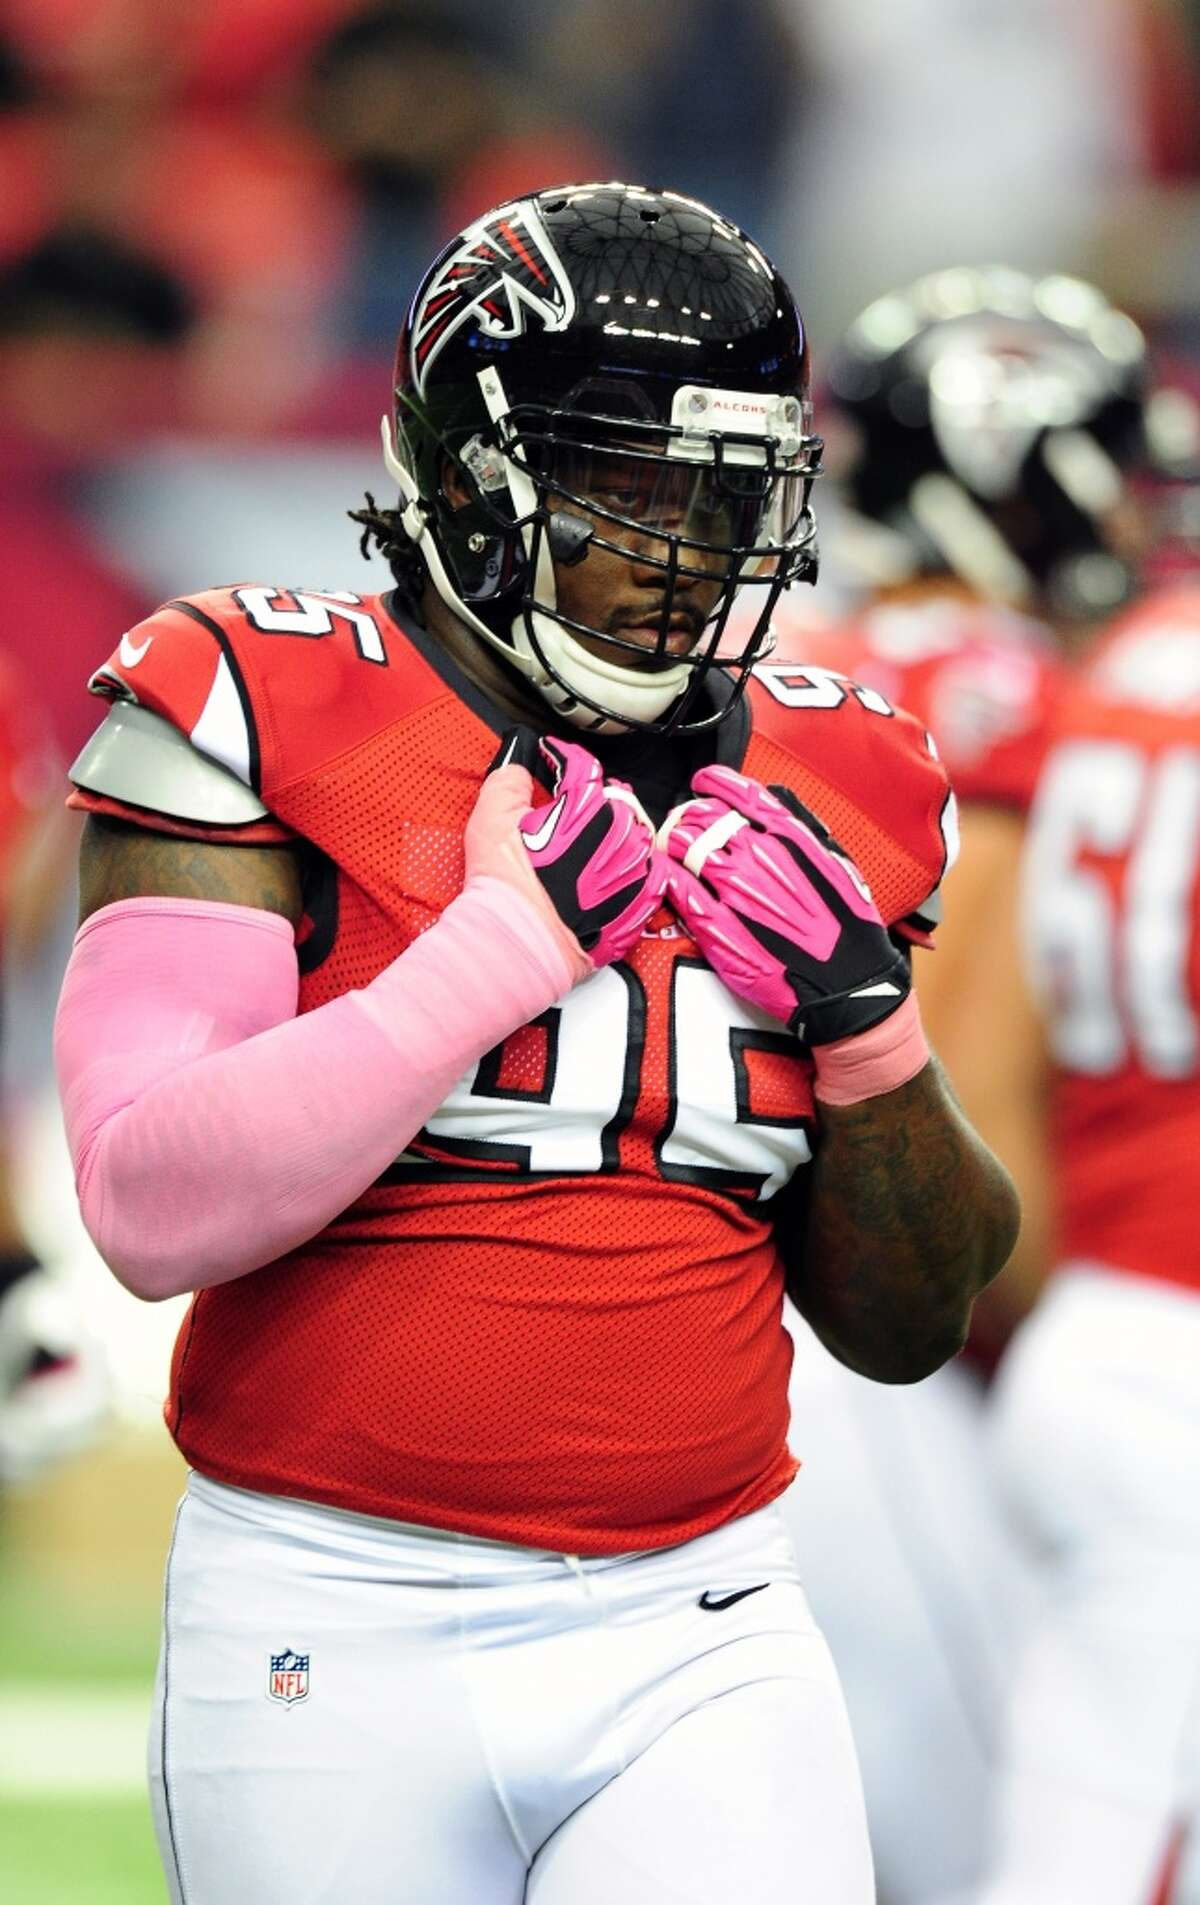 In his 12th year in the league, Falcons defensive tackle Jonathan Babineaux is playing in his first Super Bowl. He graduated from Port Arthur Lincoln in 2000 and attended college at Iowa.